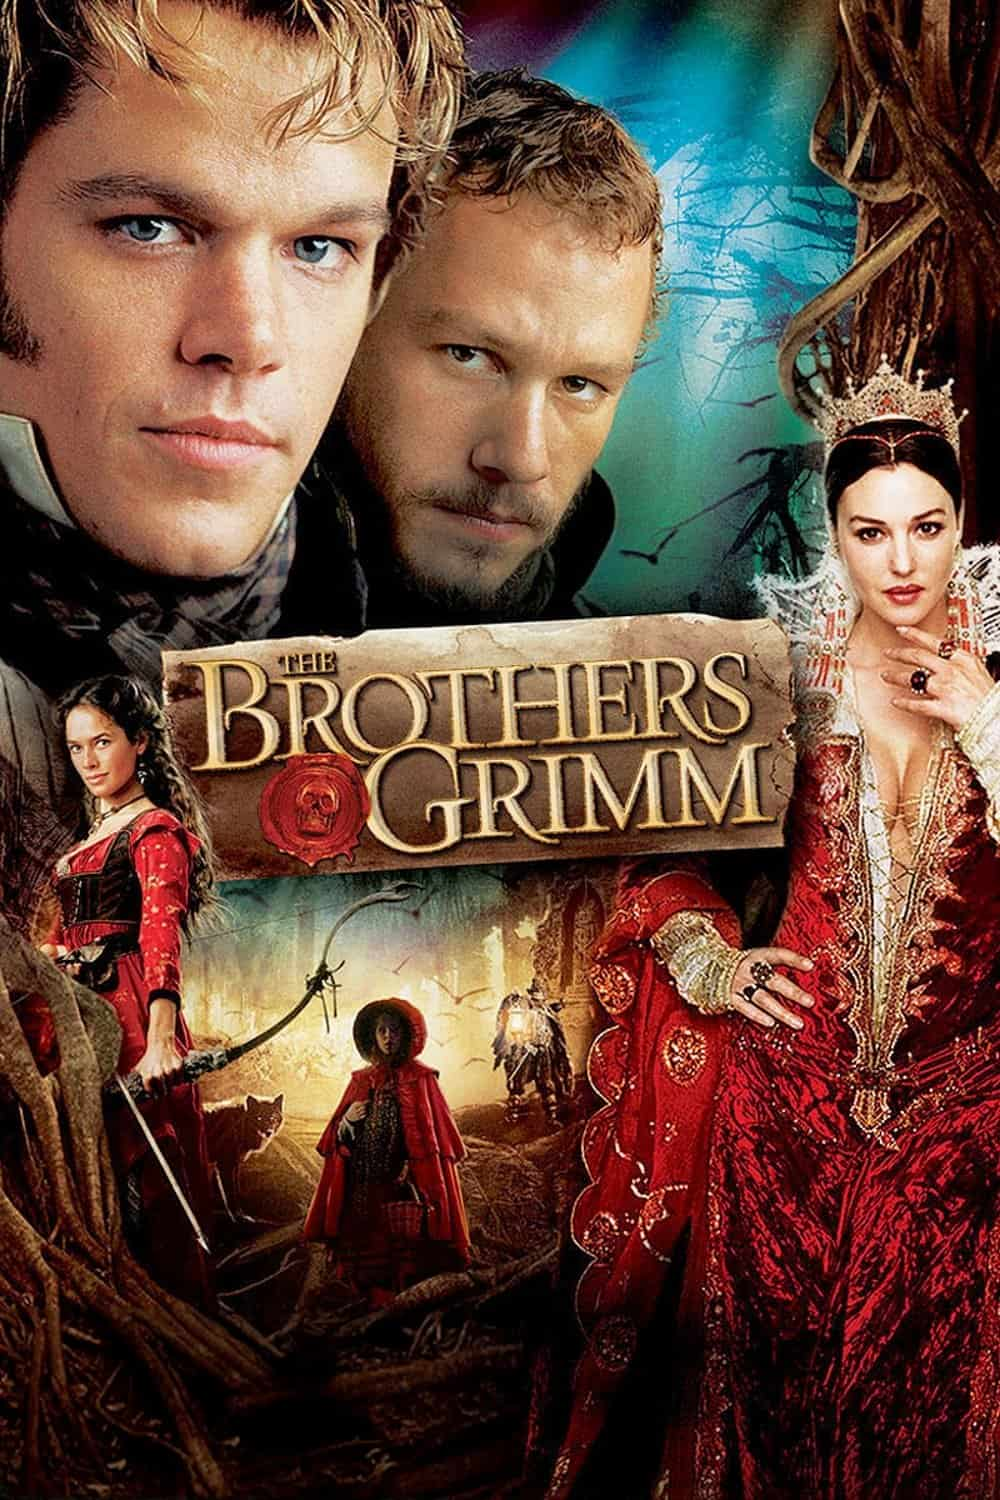 The Brothers Grimm, 2005